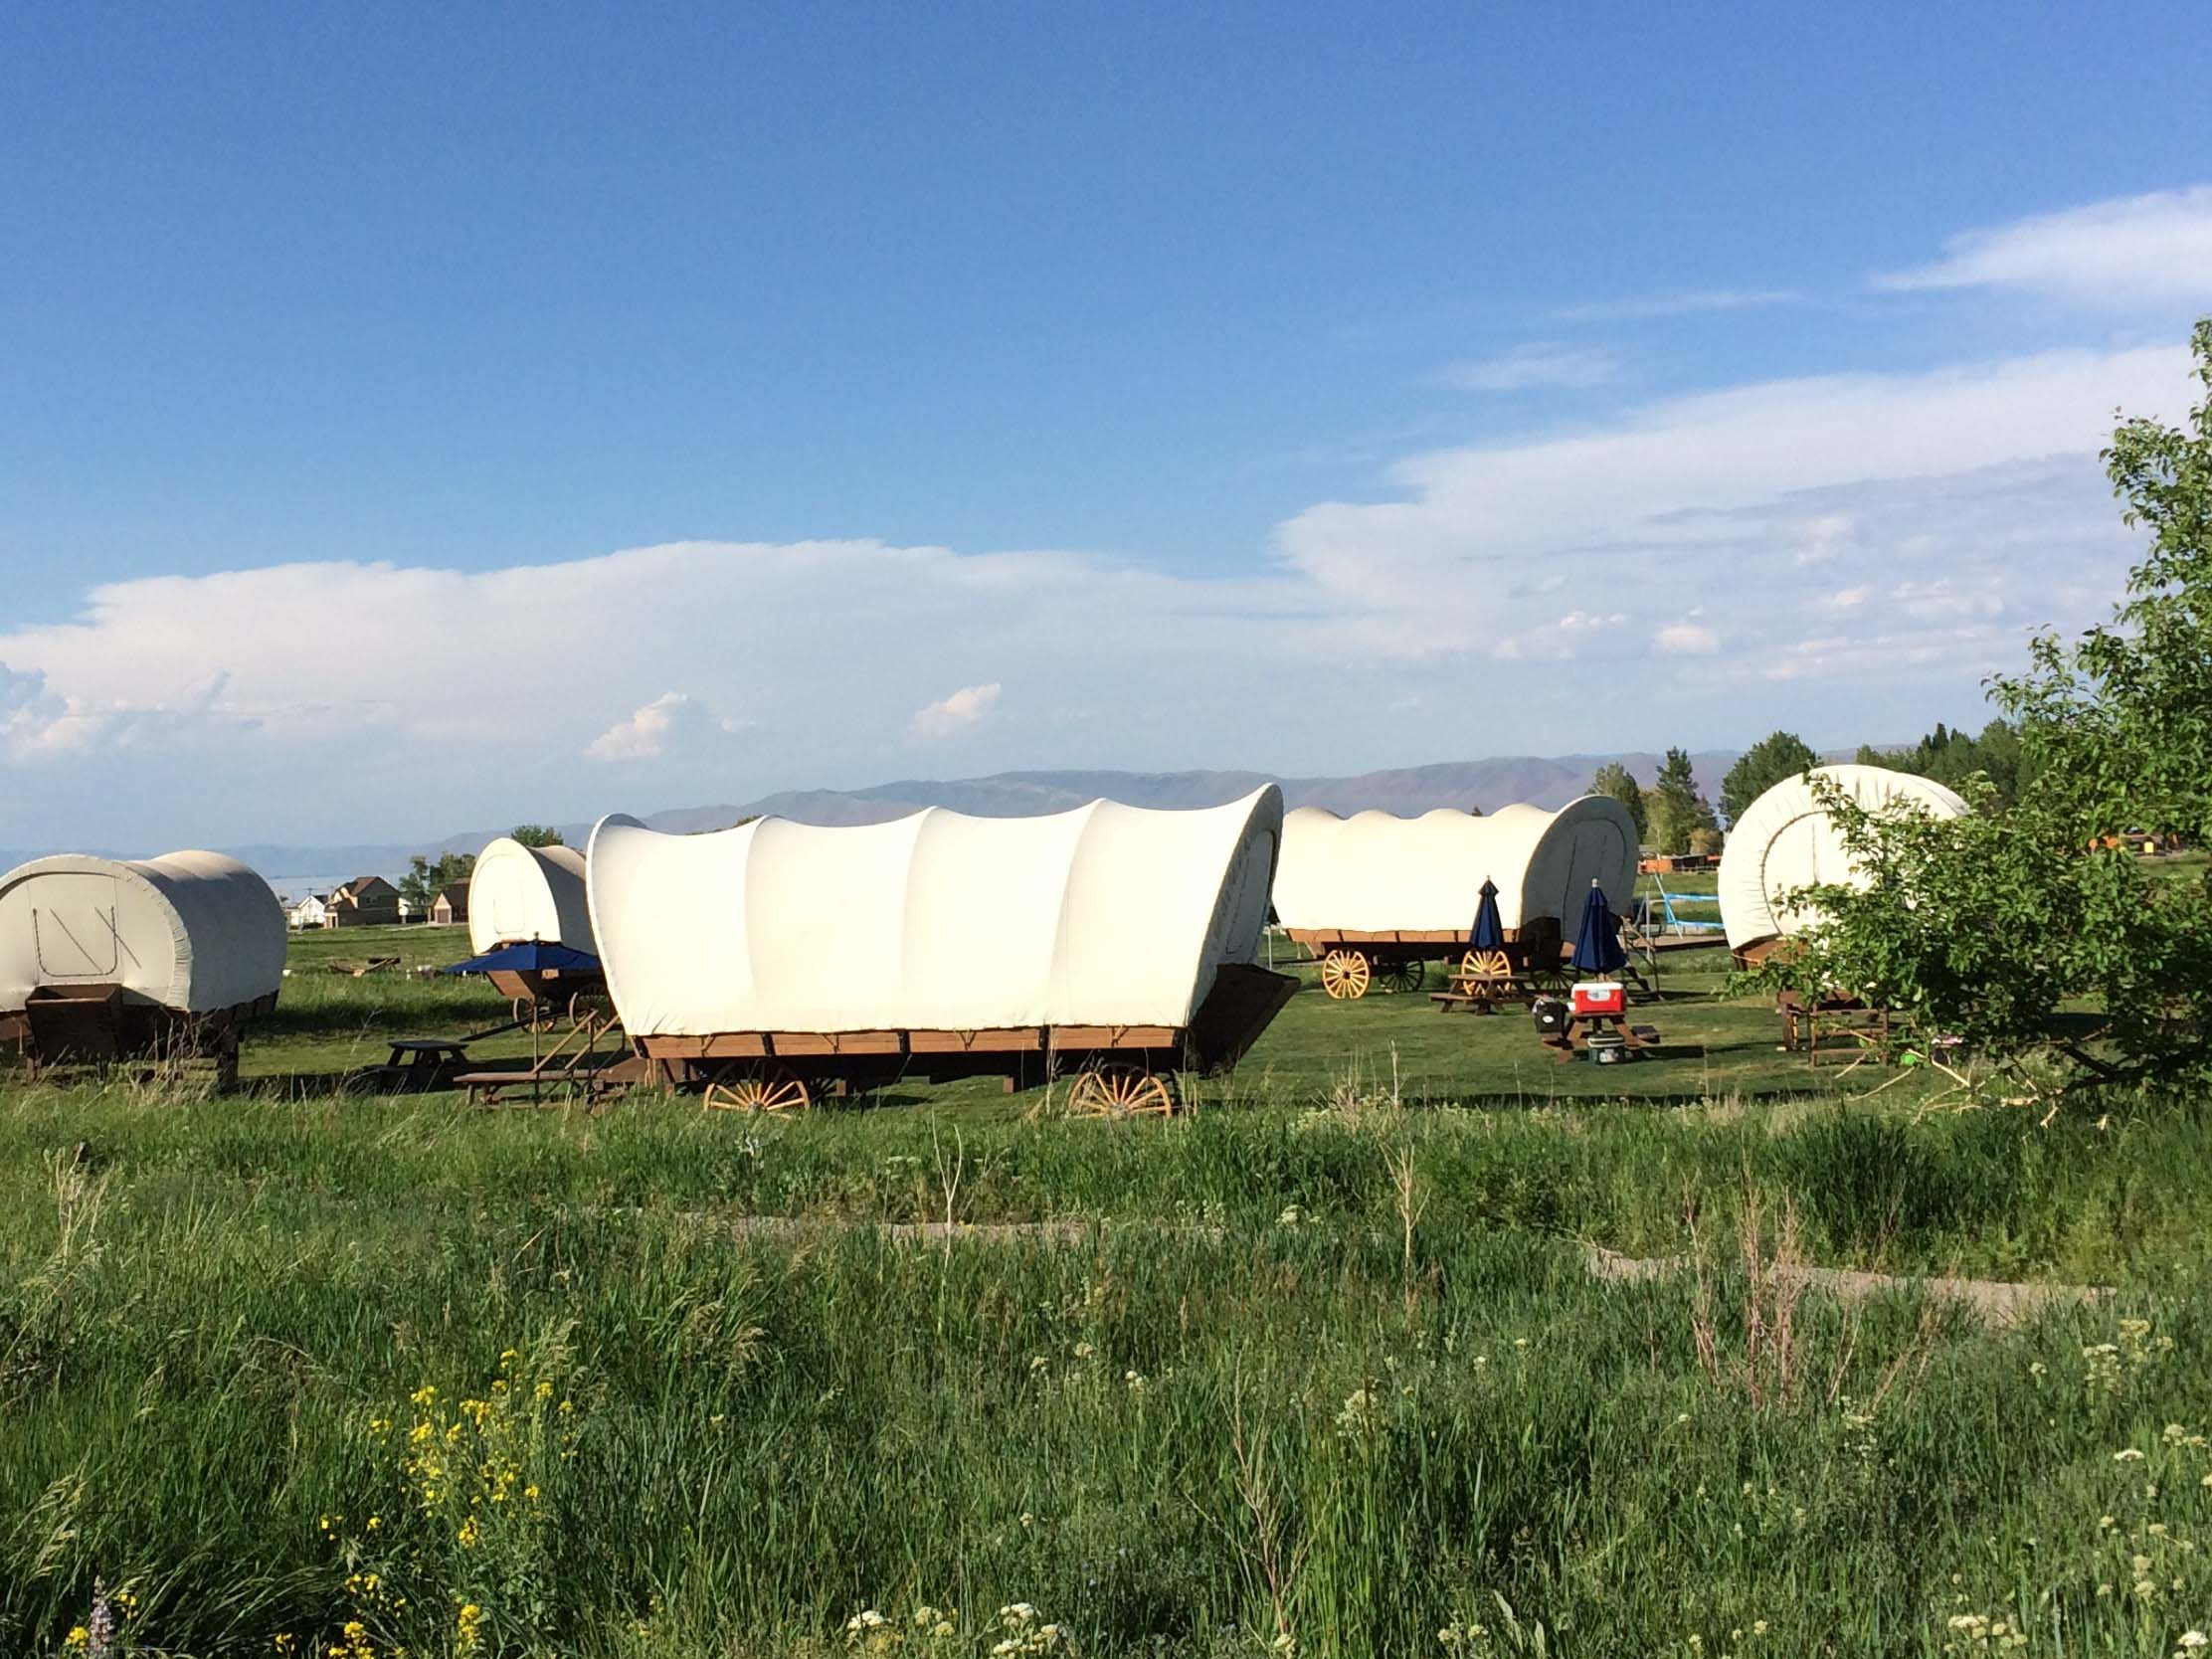 Hit the Road: Luxury accommodations replace tents at Utah 'glampground'